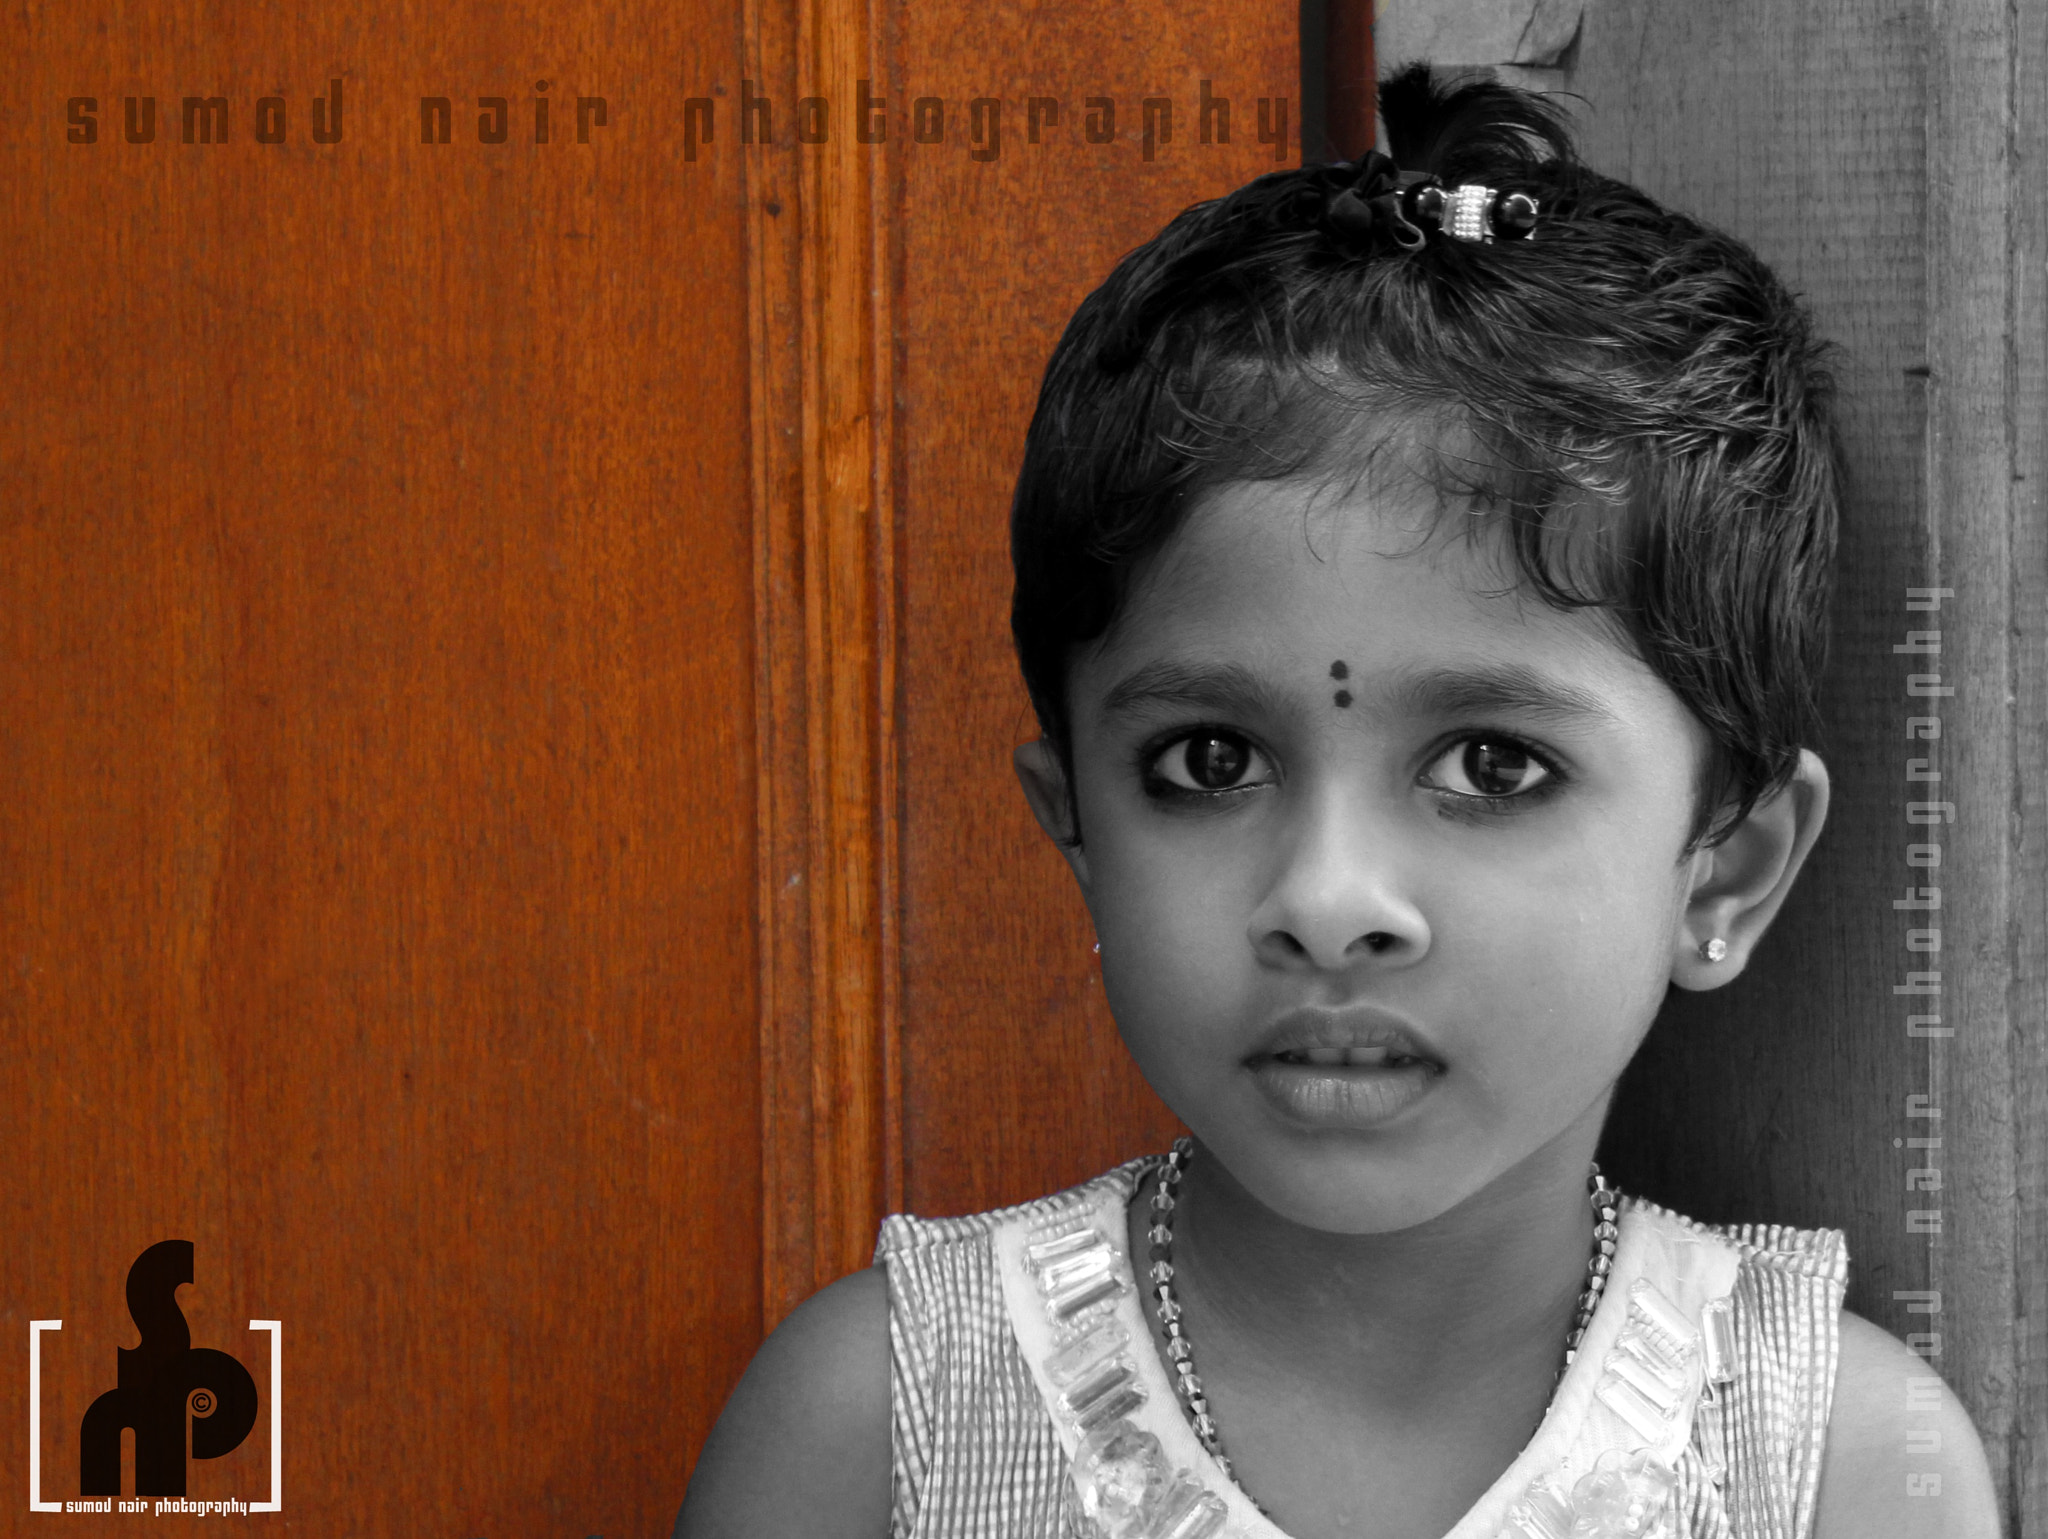 Photograph Innocence by Sumod Nair on 500px